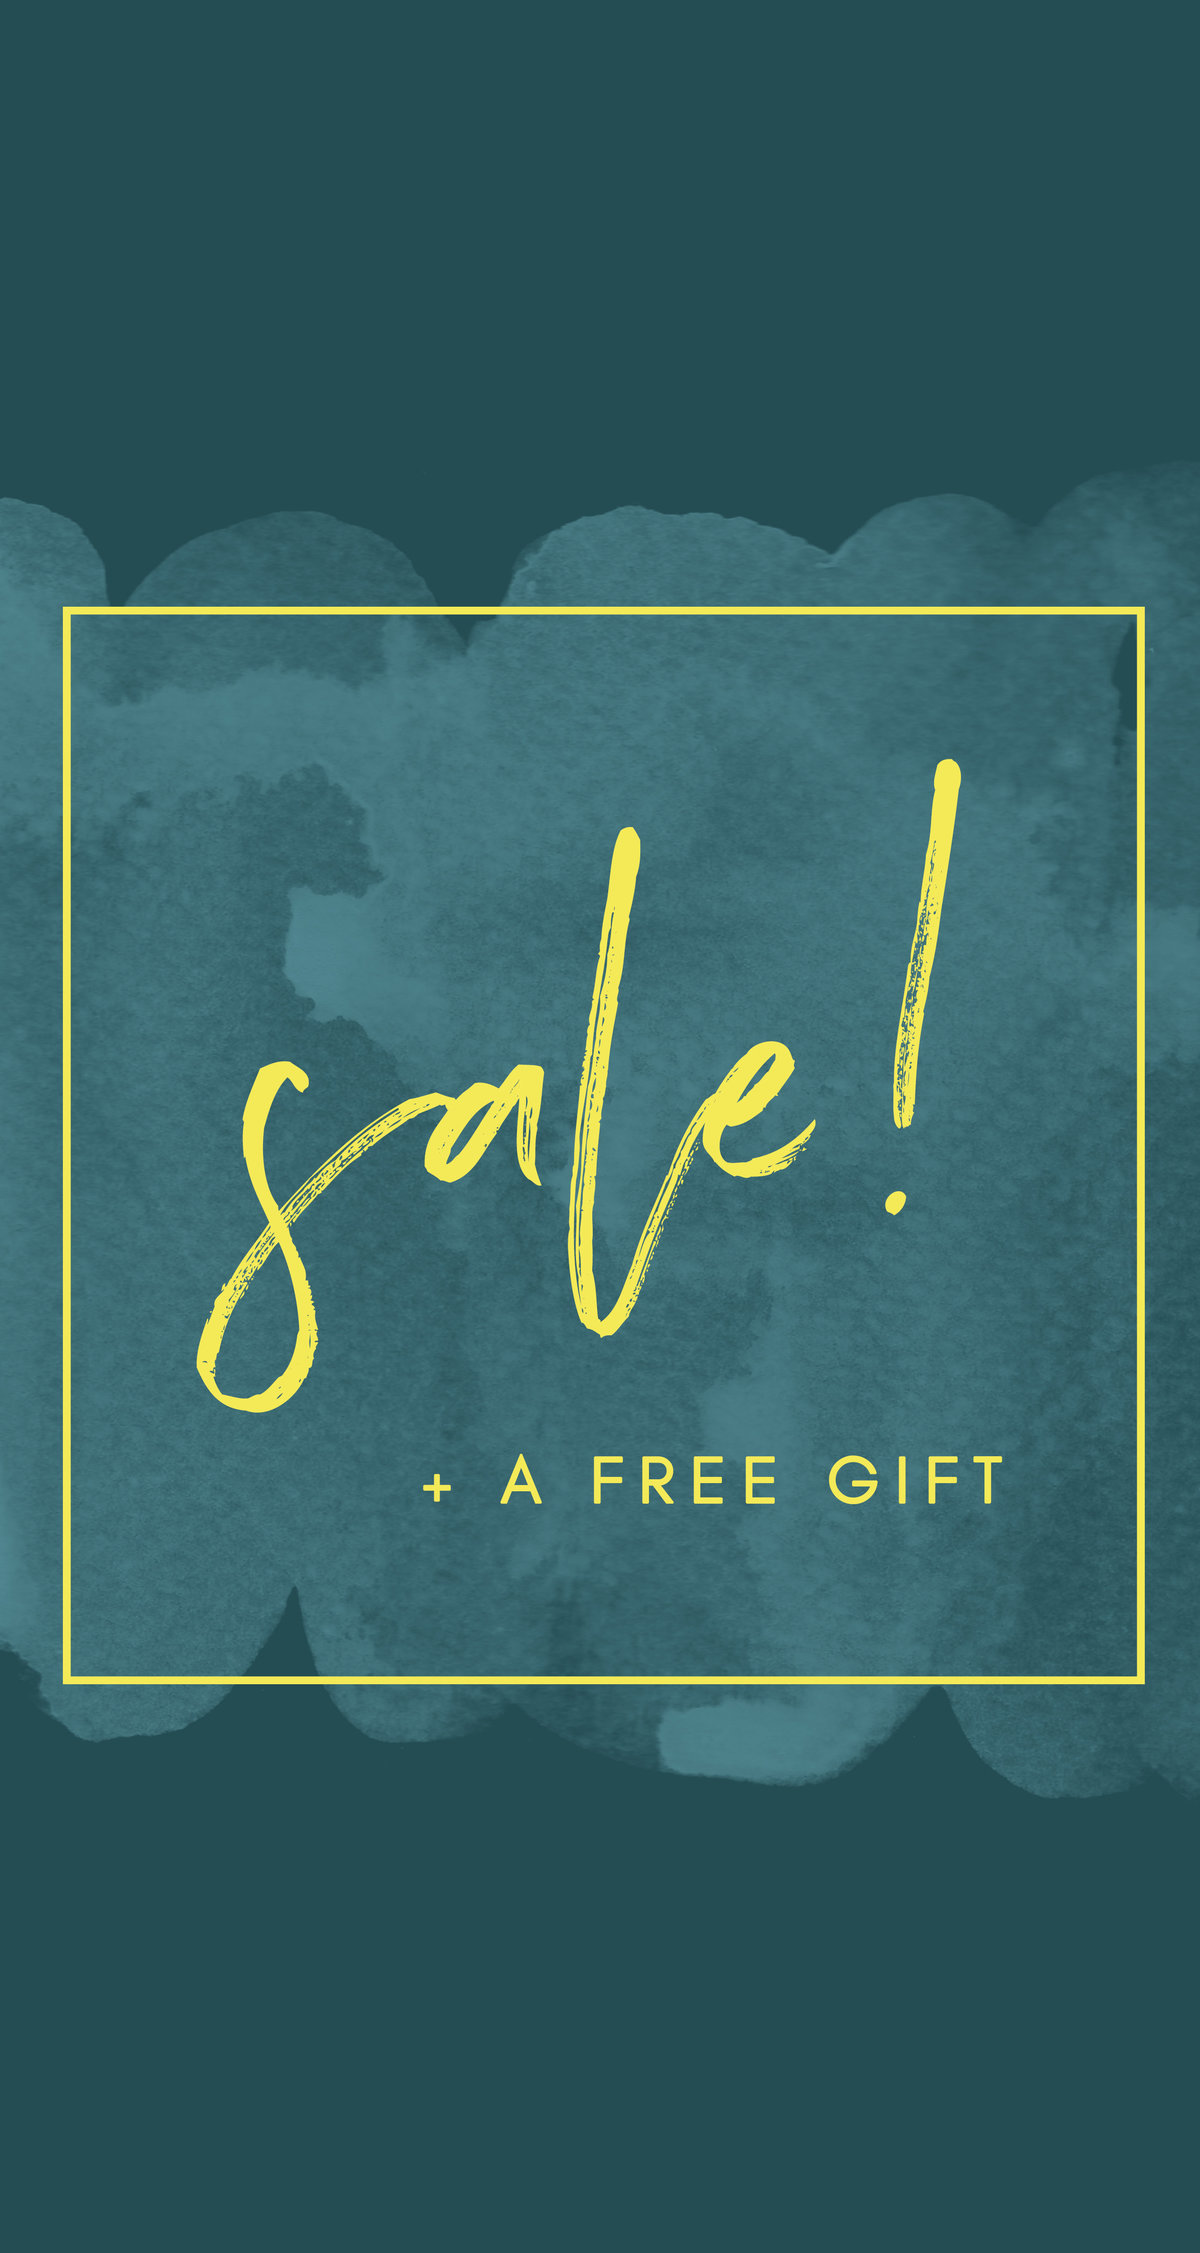 Sale and Free Gift Instagram Story